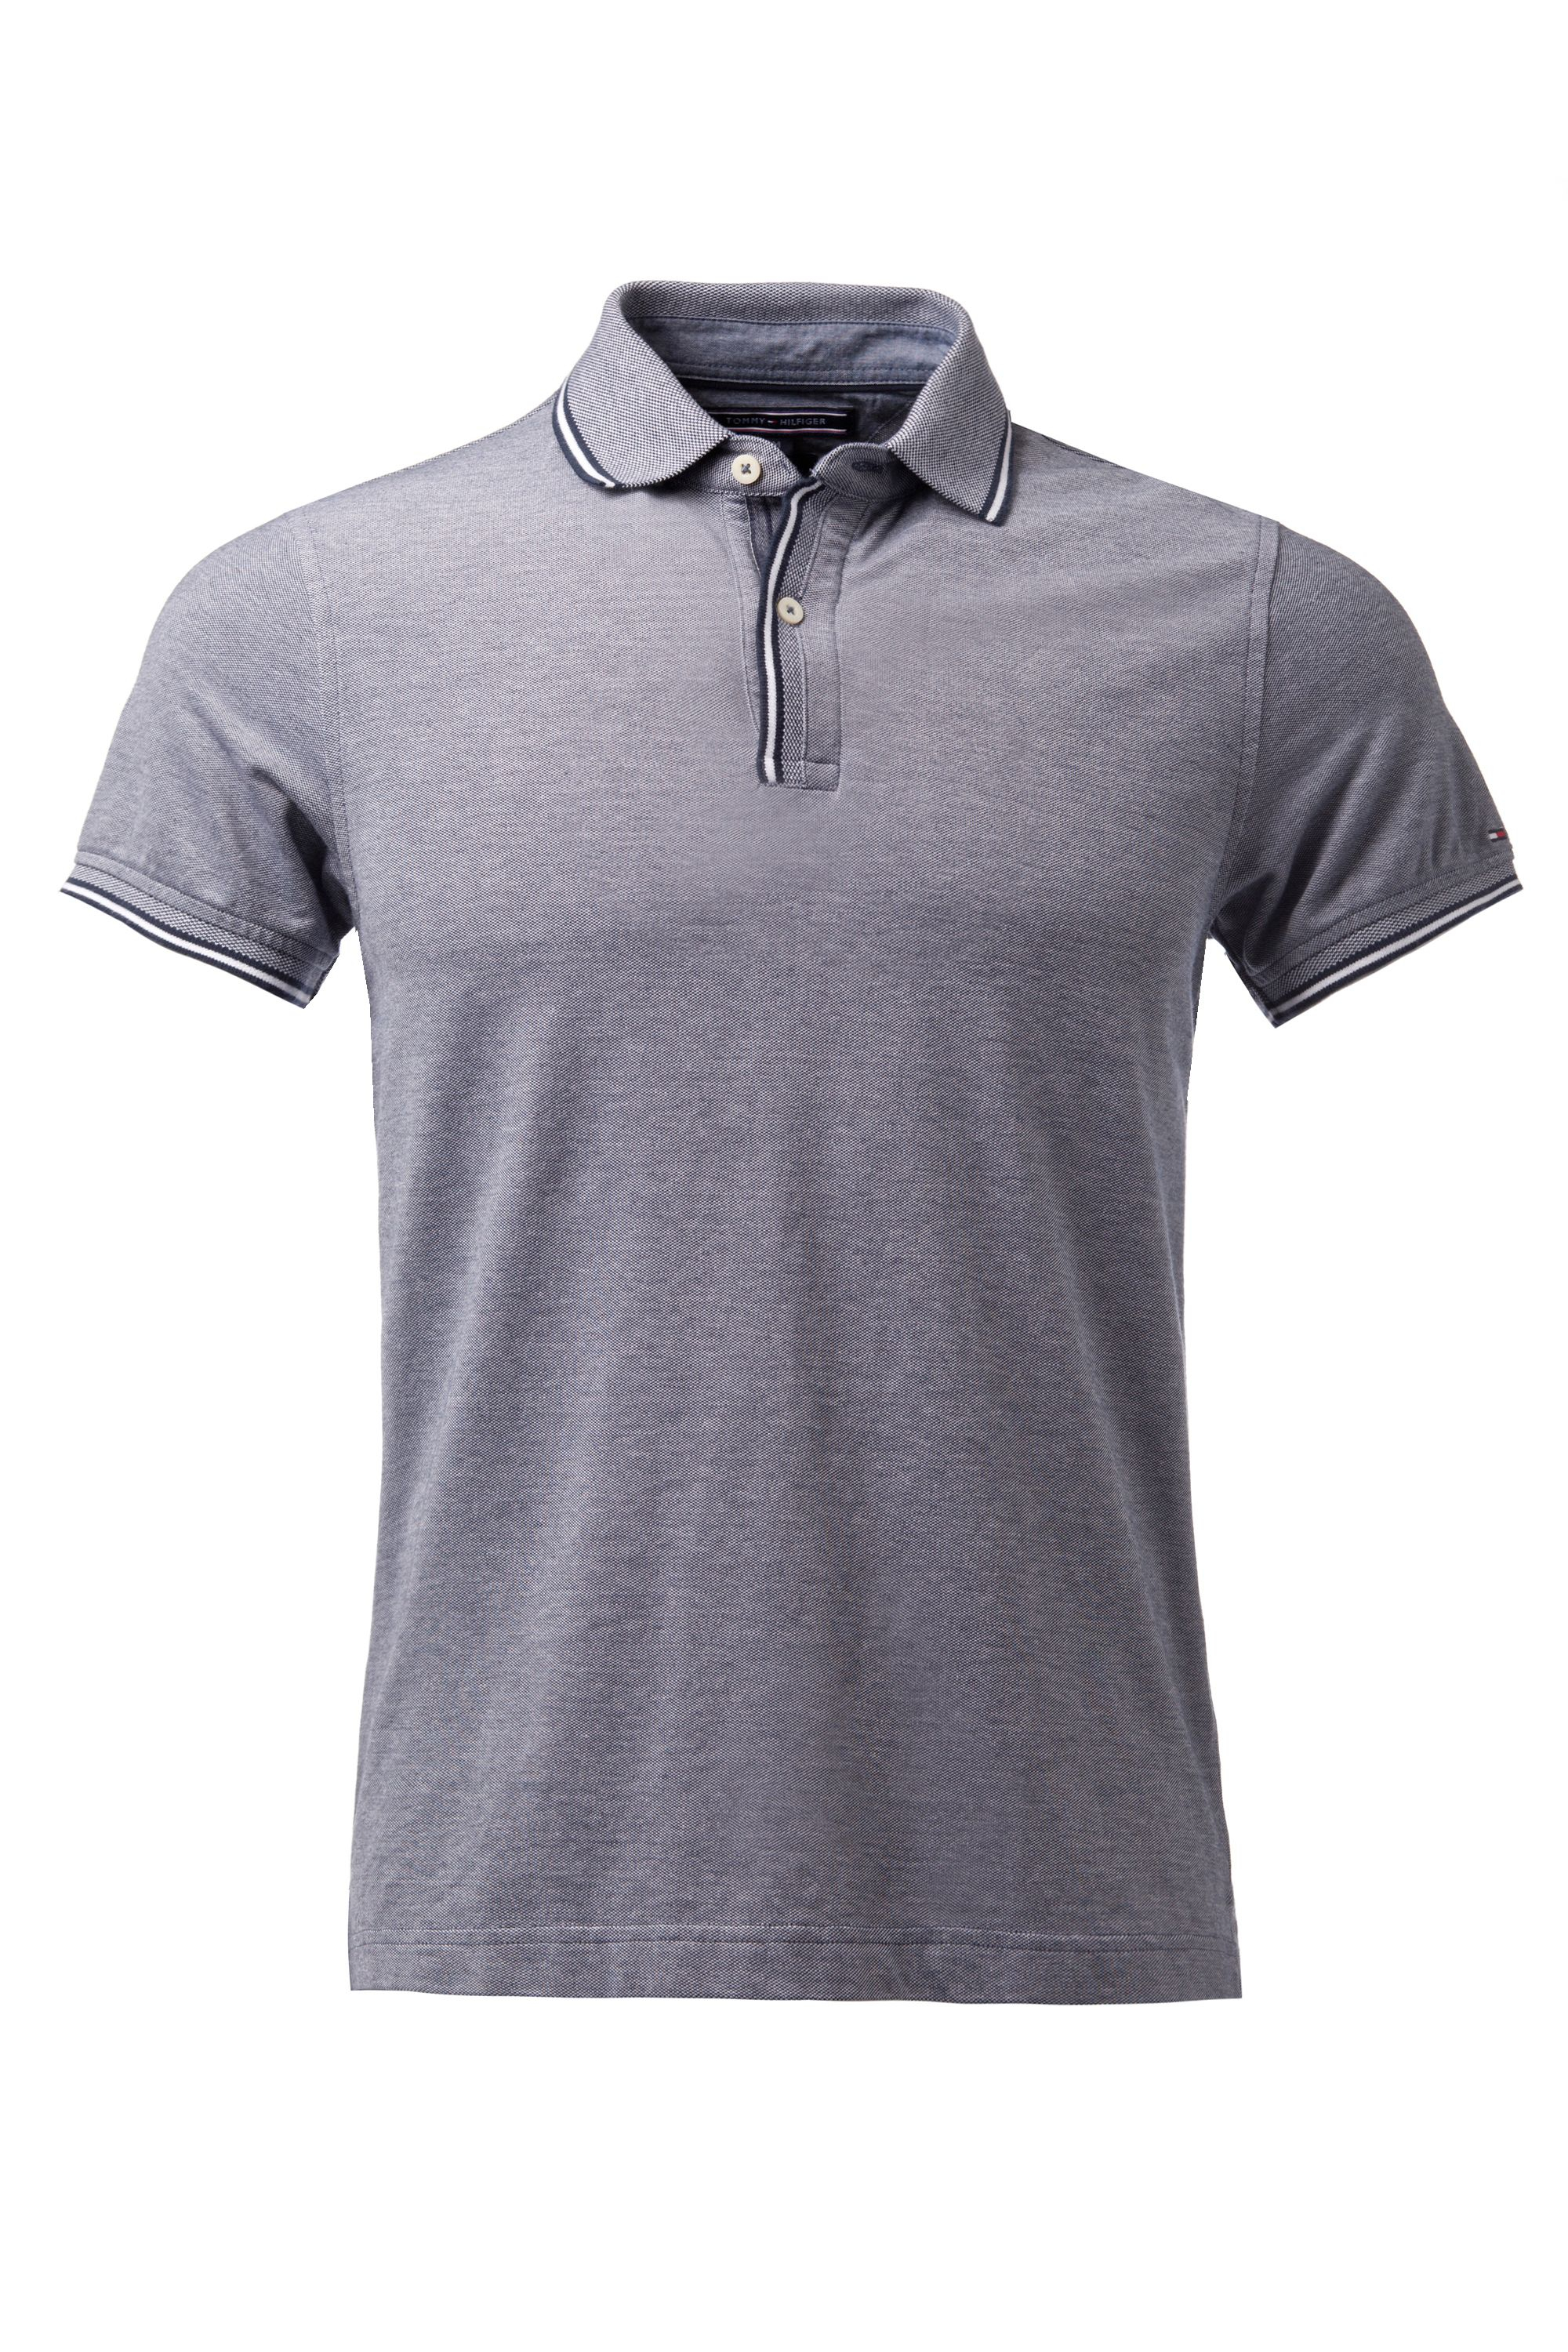 Tommy hilfiger bram plain slim fit polo shirt in blue for for Plain navy polo shirts